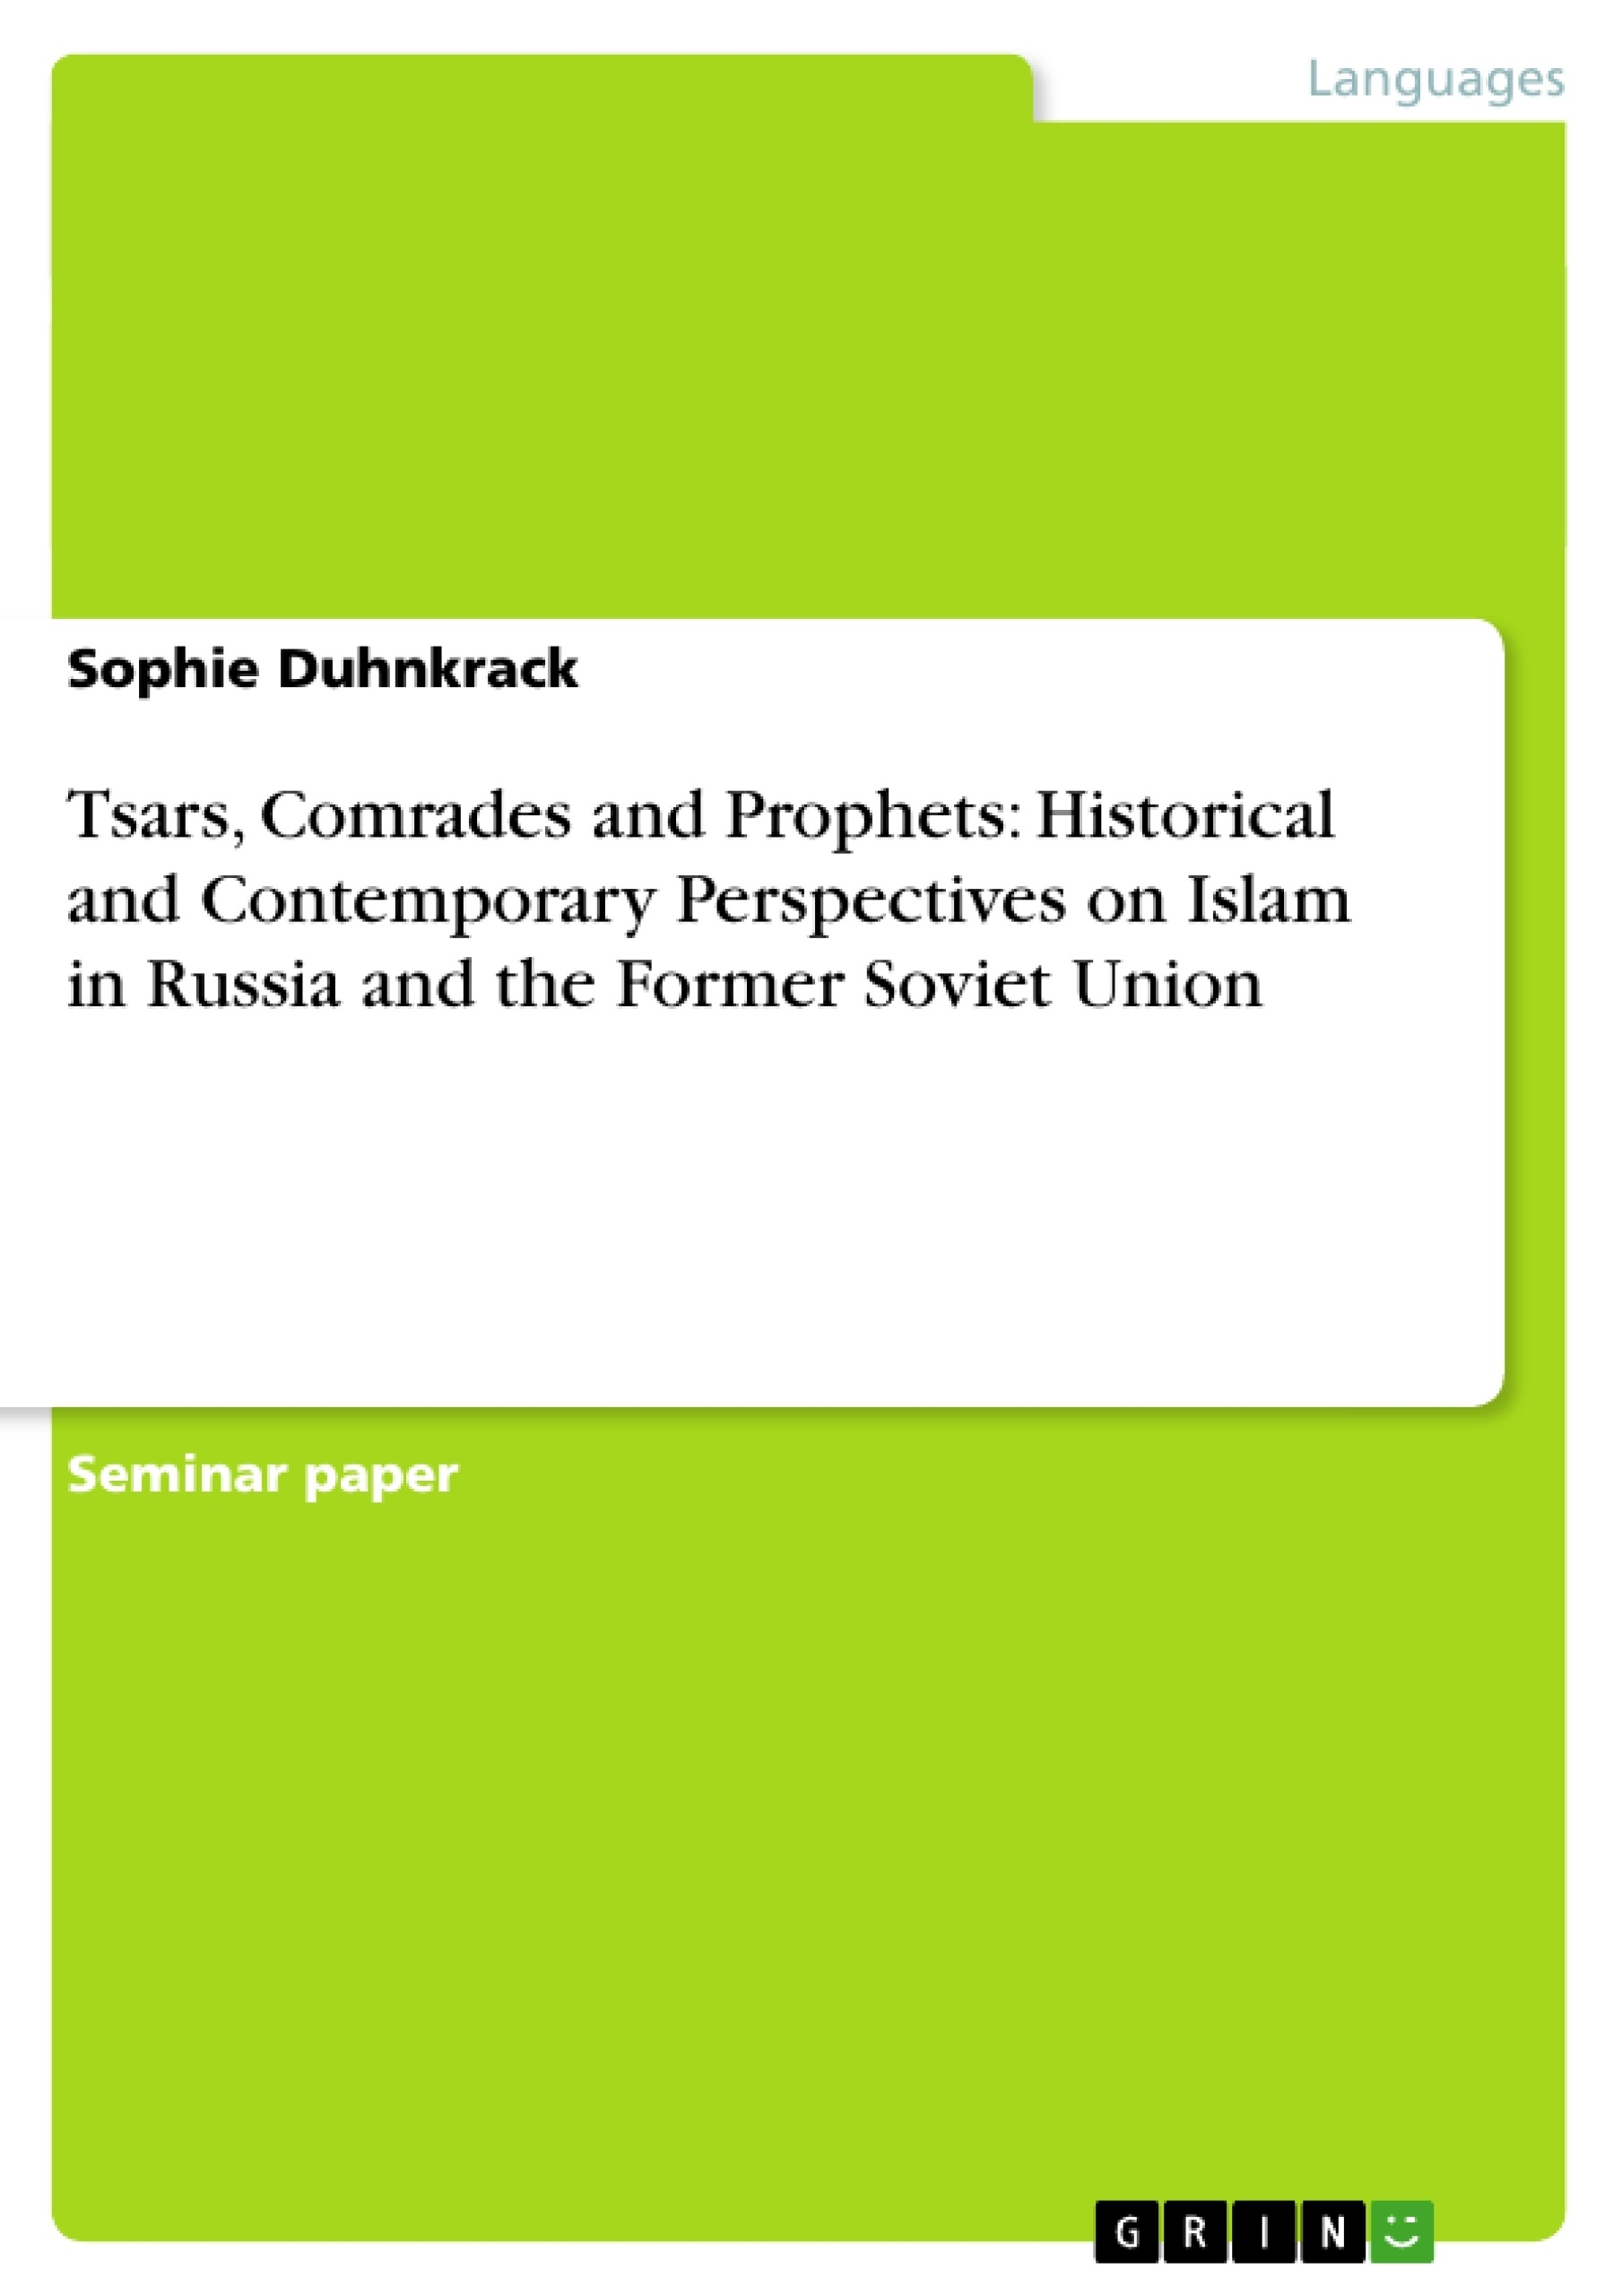 Title: Tsars, Comrades and Prophets: Historical and Contemporary Perspectives on Islam in Russia and the Former Soviet Union